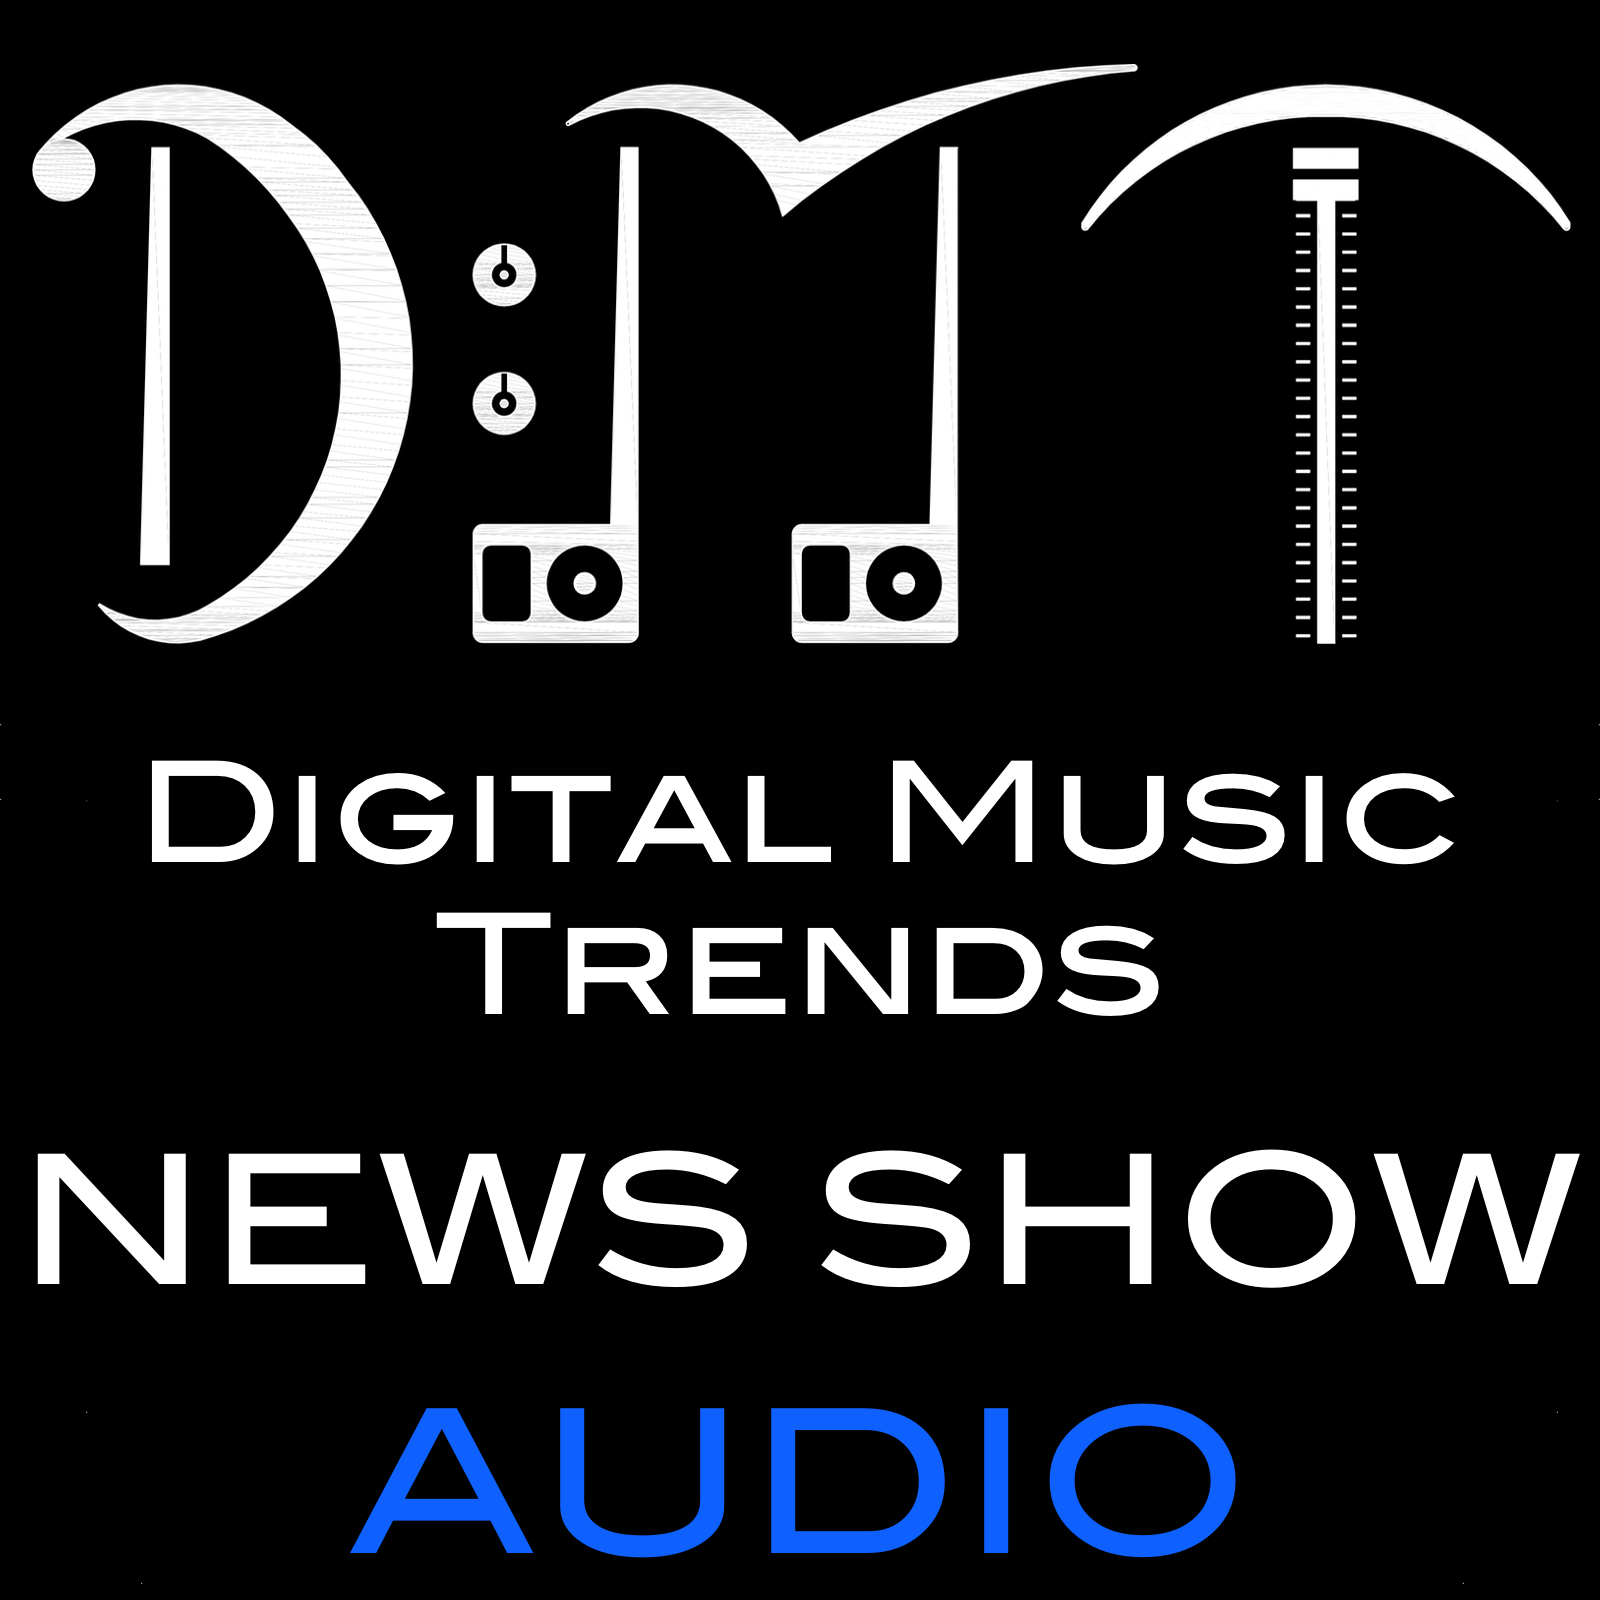 Digital Music Trends Audio